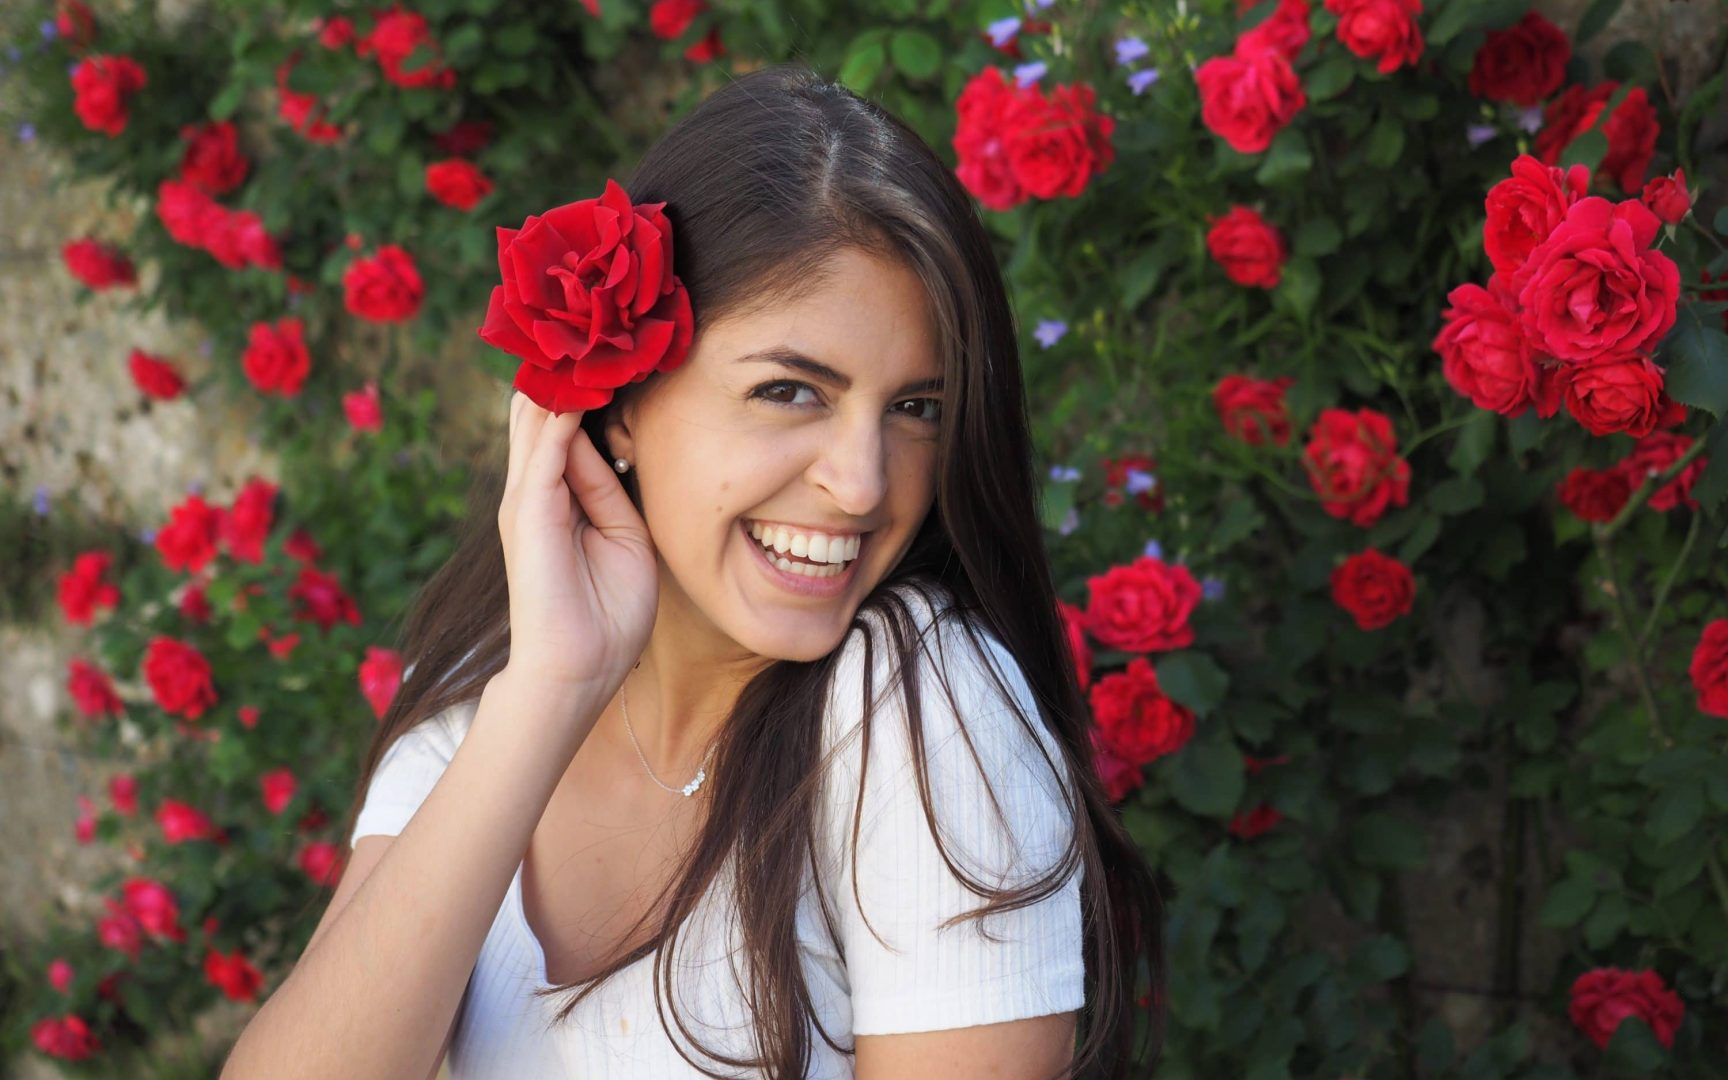 Abbigail Halem in front of a rose wall with a rose in her hair